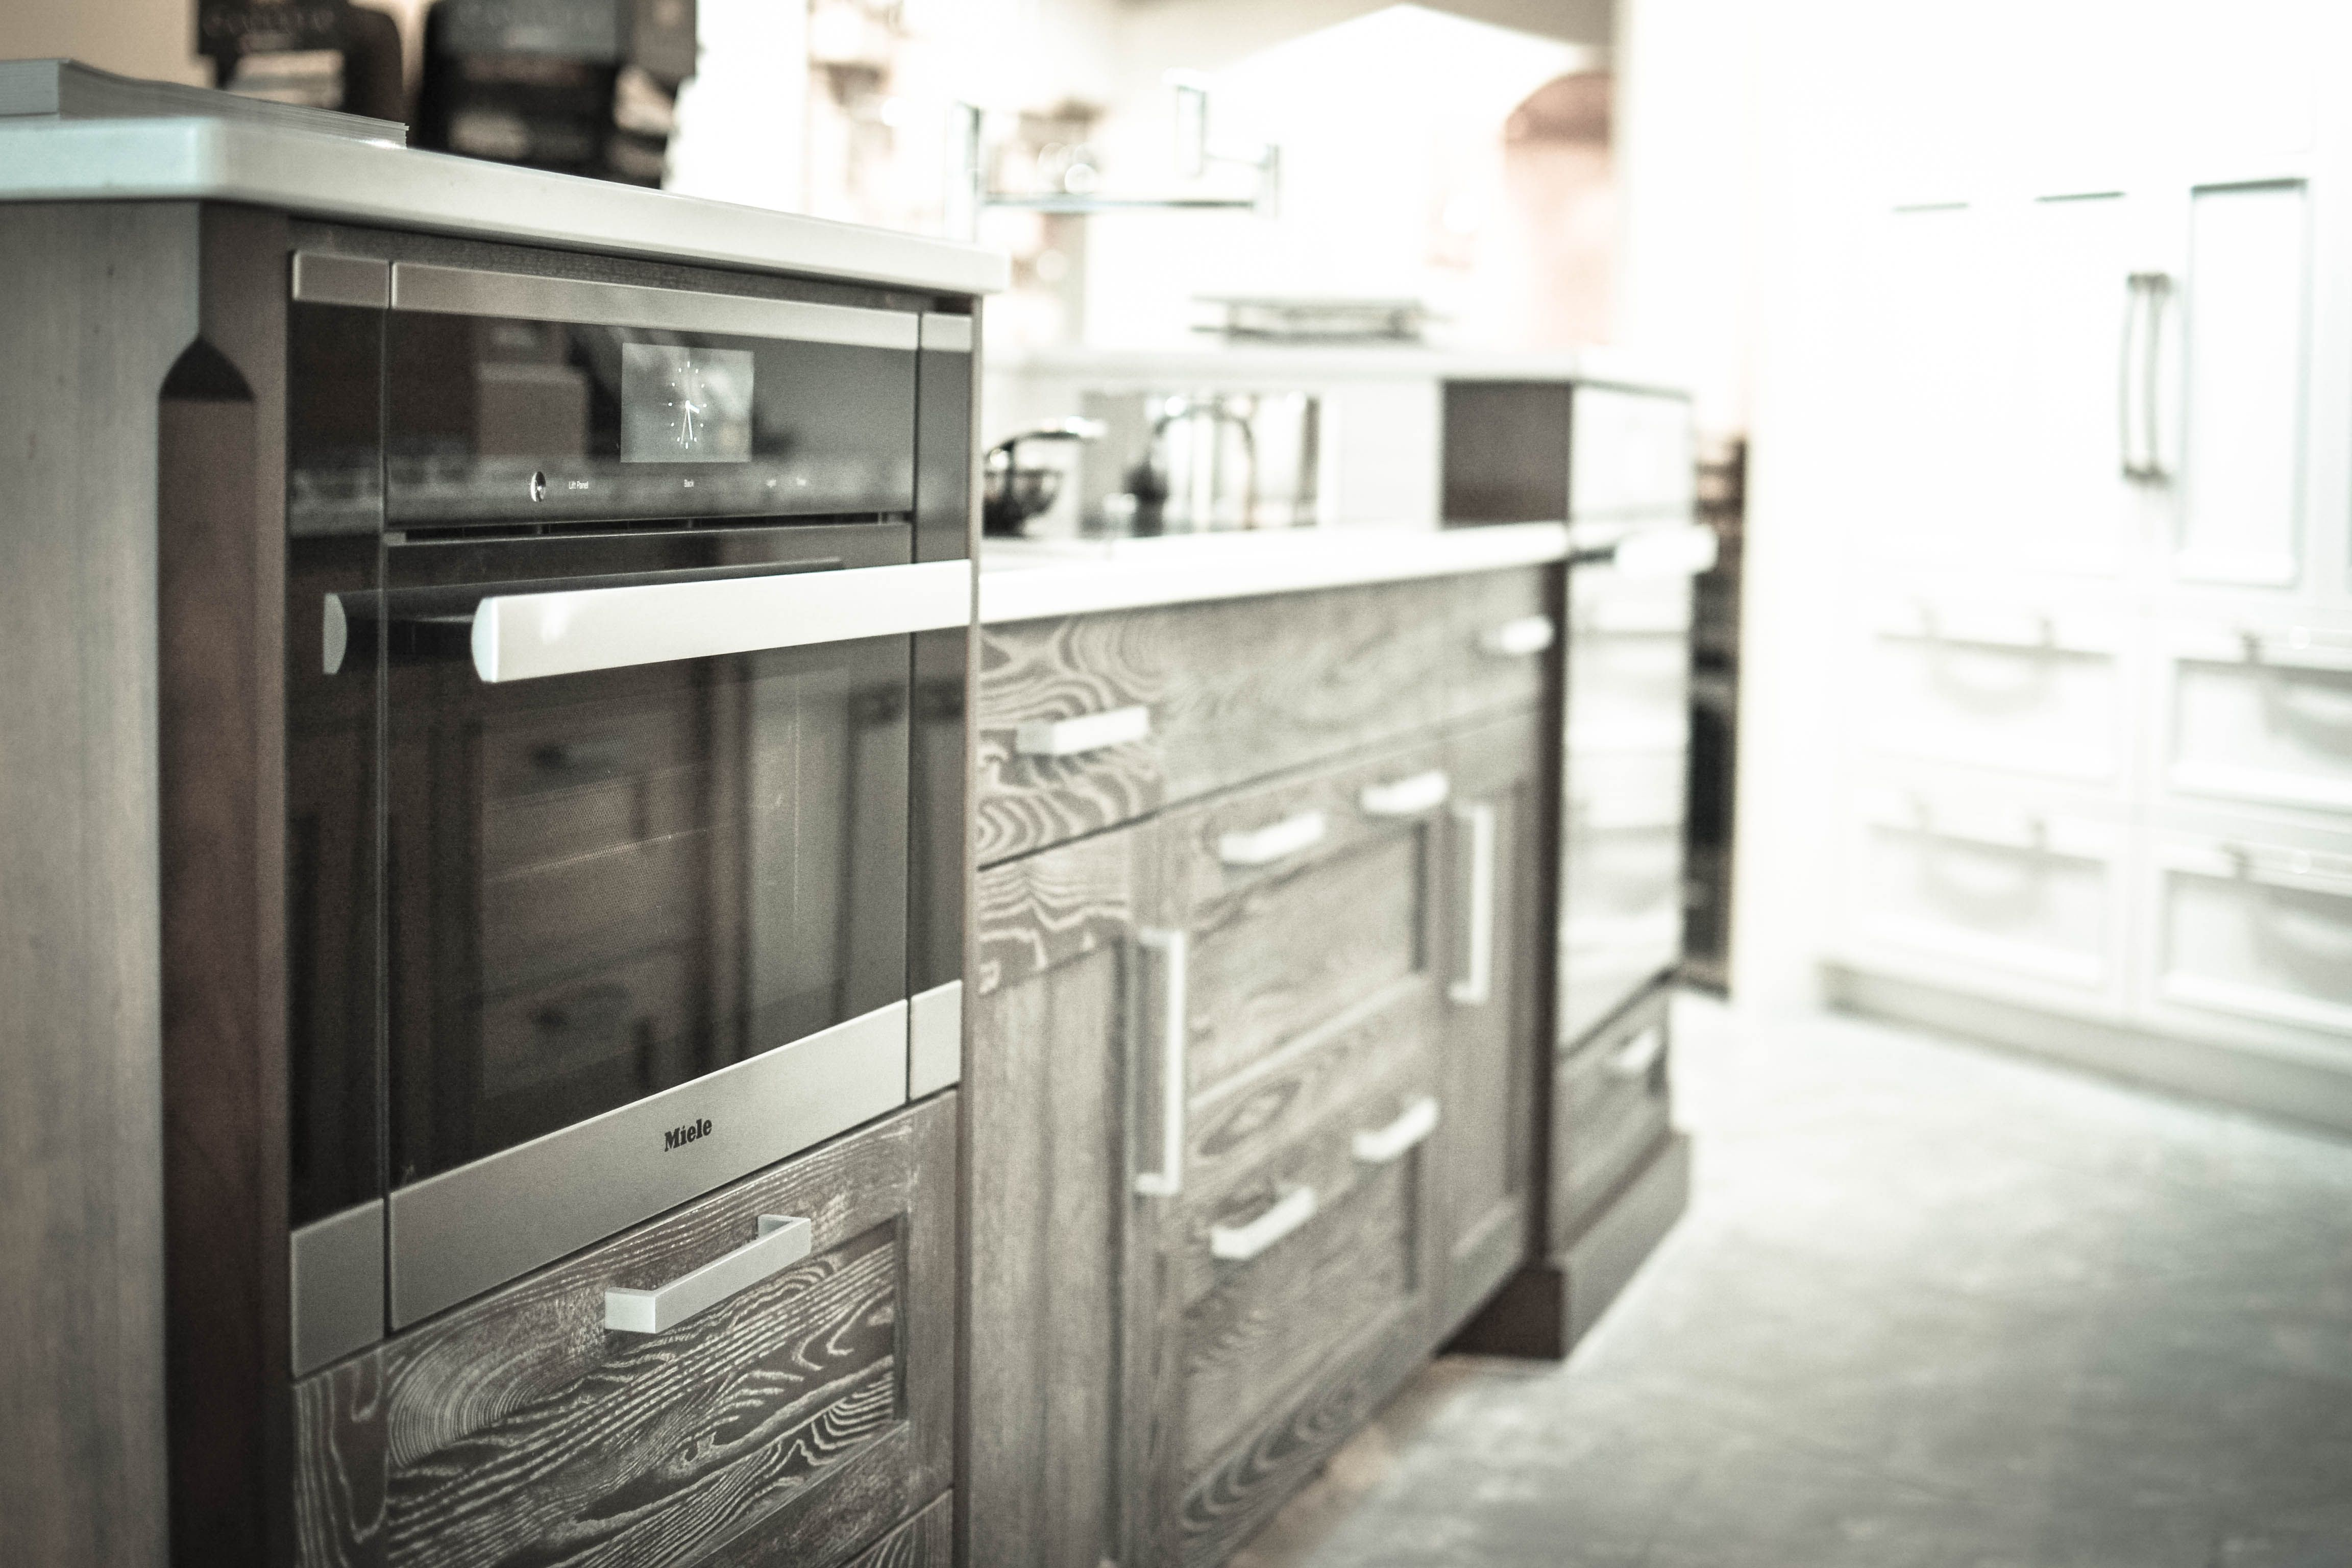 Pin by Kitchens By Lenore on Showroom   Pinterest   Palm beach ... The Kitchen West Palm Beach on the kitchen san francisco, the kitchen chicago, the kitchen colorado springs, the kitchen south bend, the kitchen new orleans, the kitchen columbus, the kitchen traverse city, the kitchen st petersburg, the kitchen los angeles, the kitchen louisville, the kitchen orlando, the kitchen pasadena, the kitchen sacramento, the kitchen jersey city, the kitchen new york city,